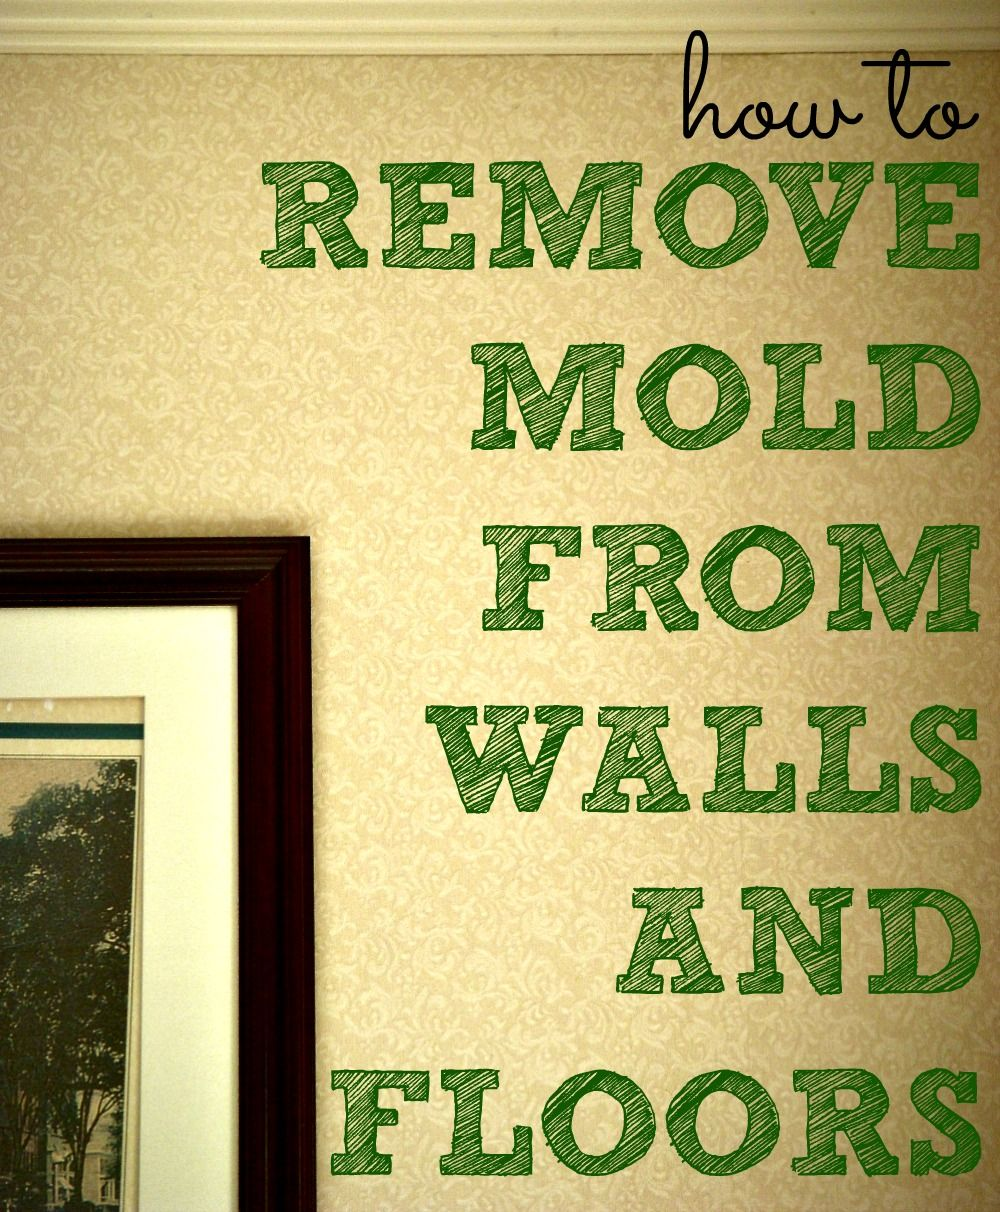 How To Get Rid Of Mold On Walls For Good Remove Mold From Walls Mold In Bathroom Get Rid Of Mold